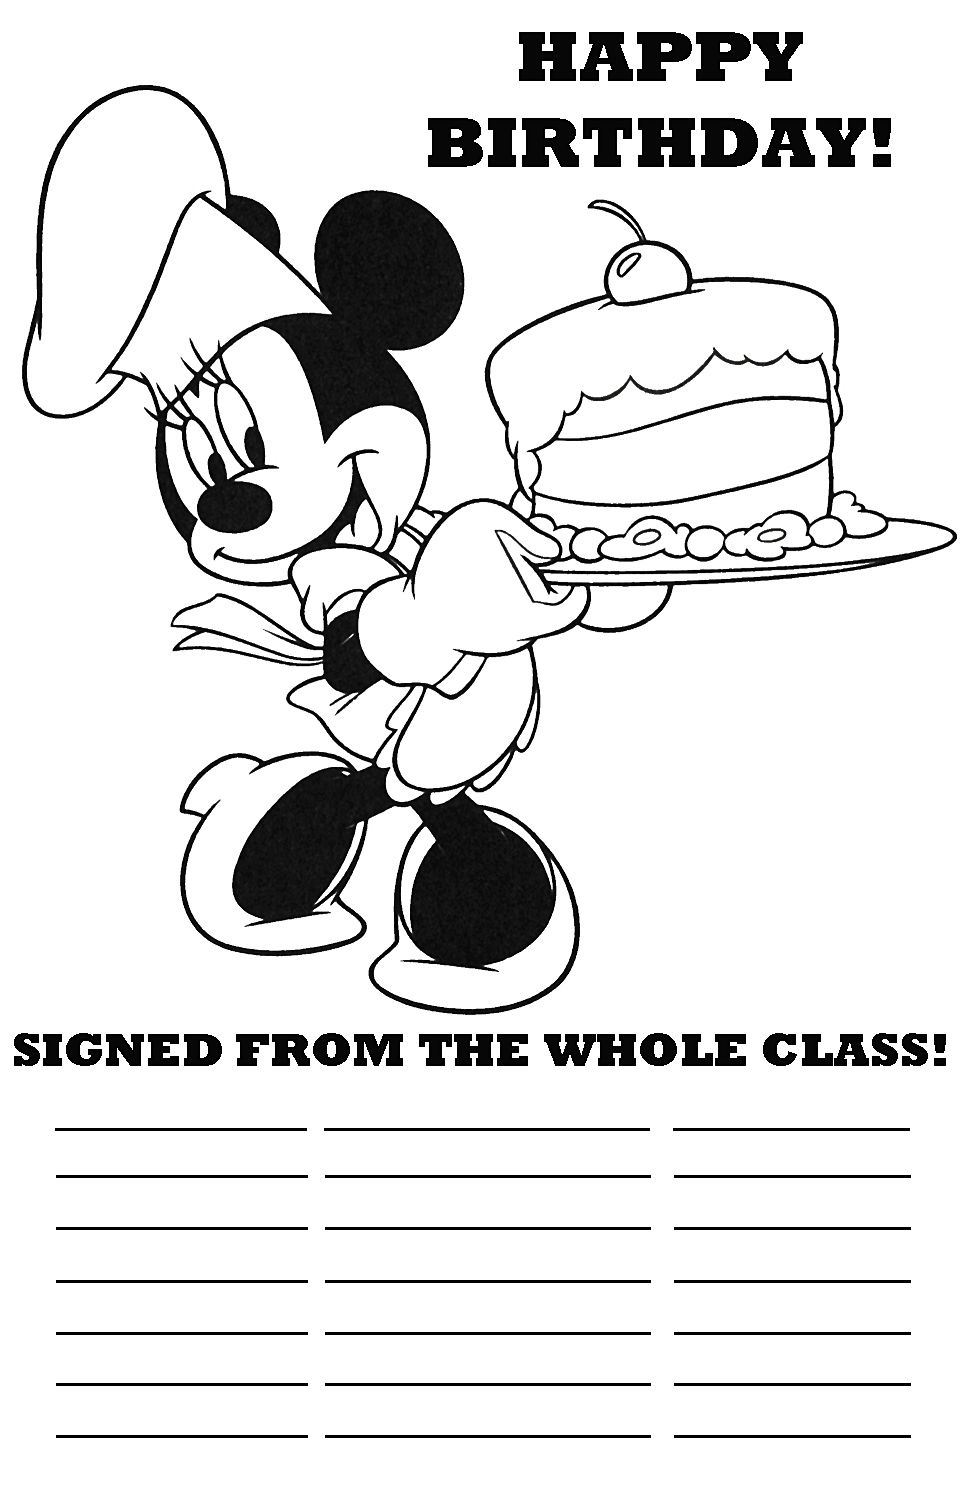 DISNEY COLORING PAGES | Digital Image/Coloring Pages/Drawings/Faces ...